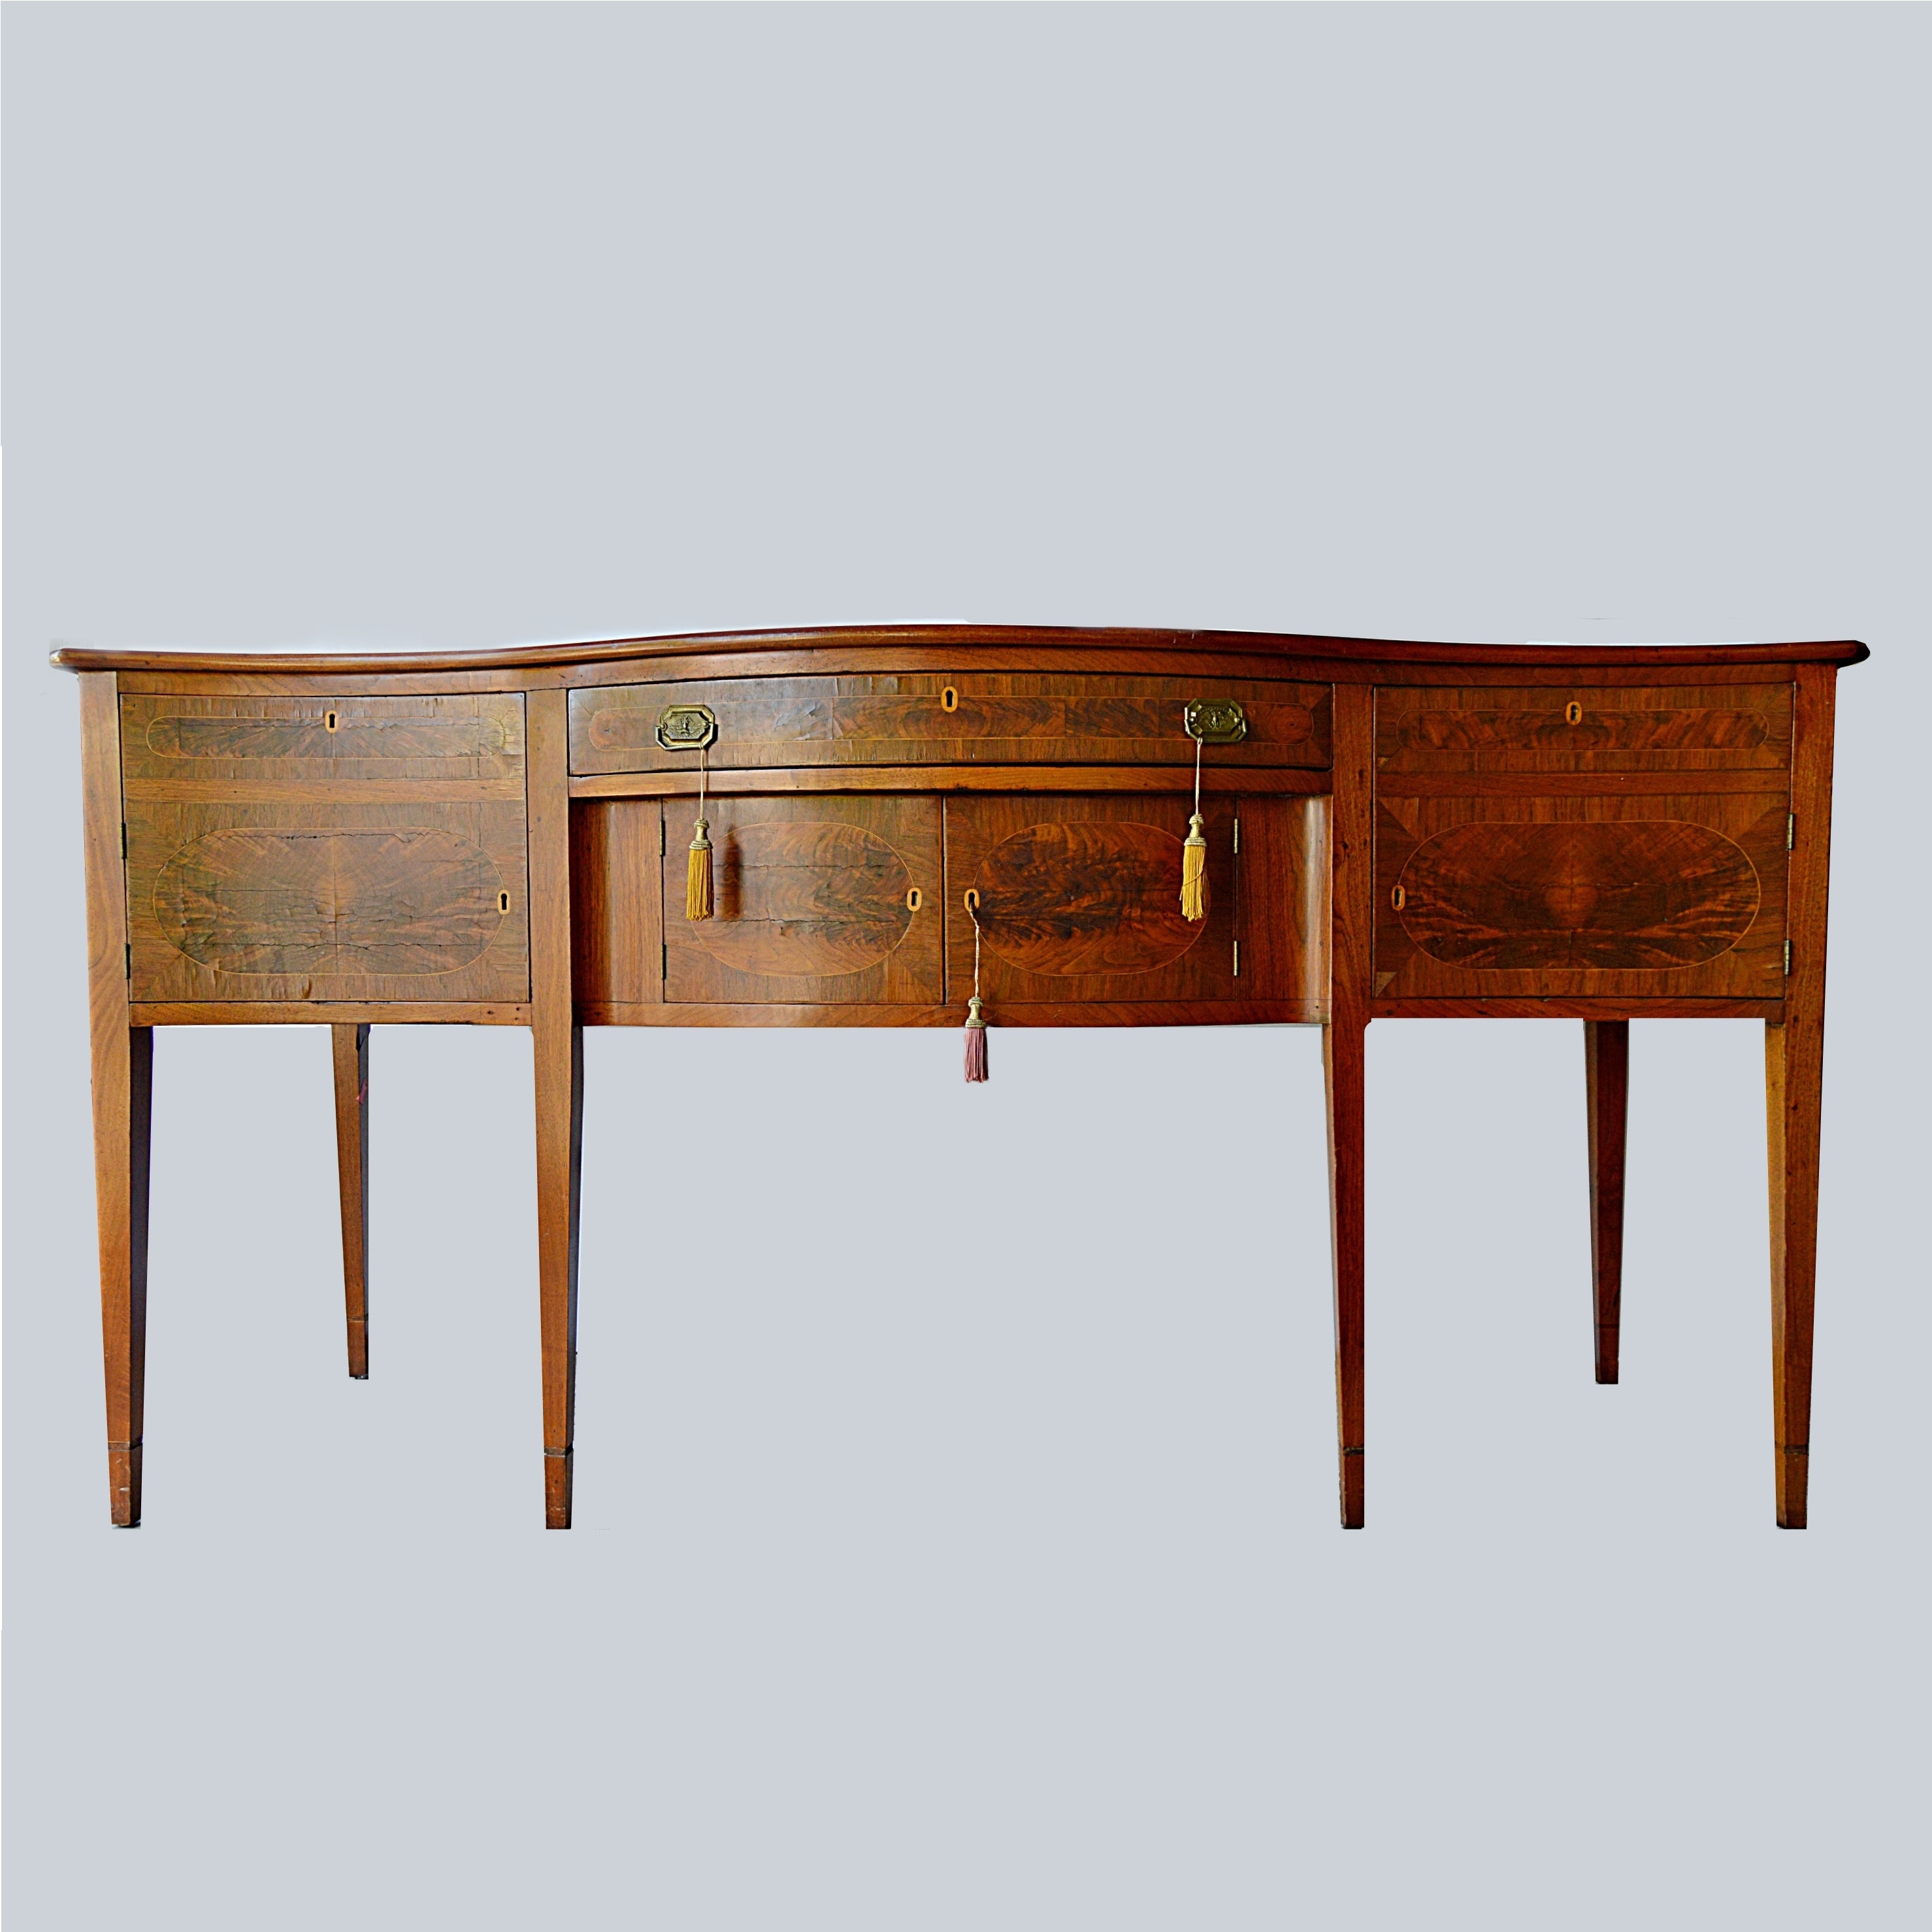 Antique Hepplewhite Style Sideboard